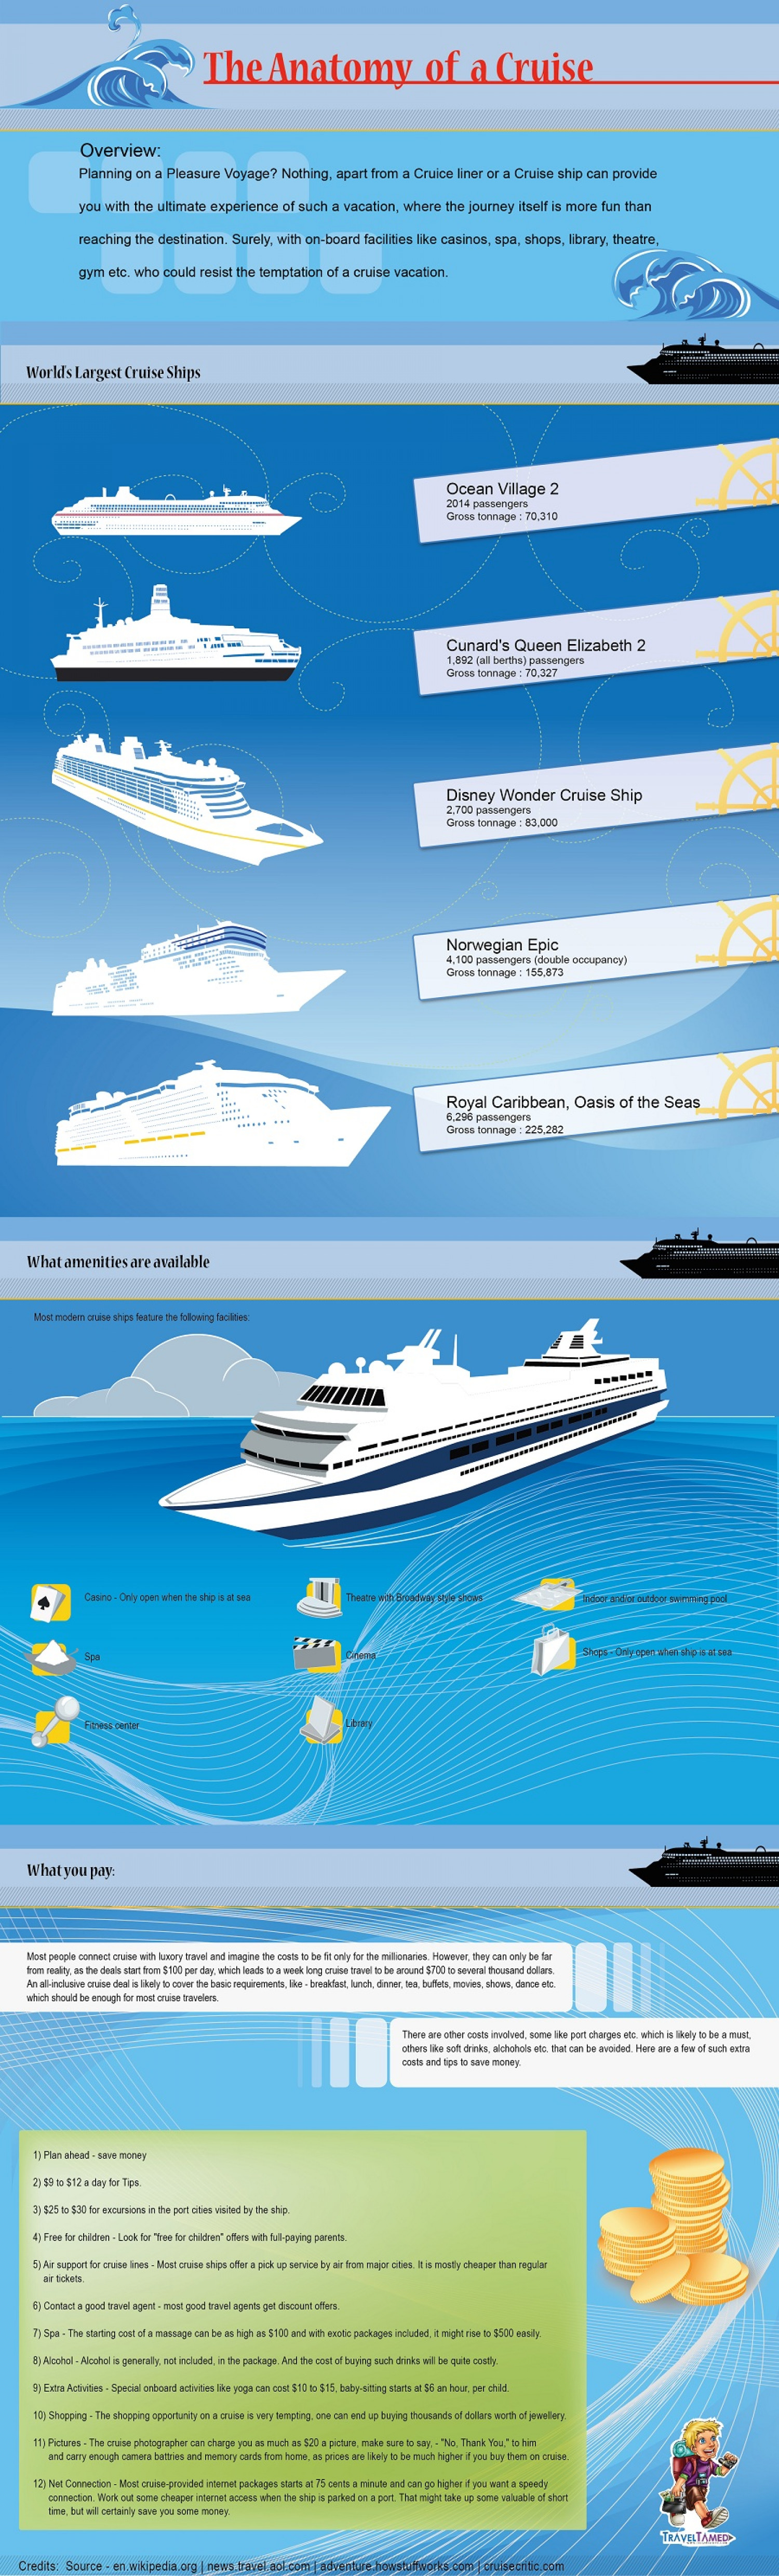 Cruise Vacation - Anatomy of a Cruise Infographic